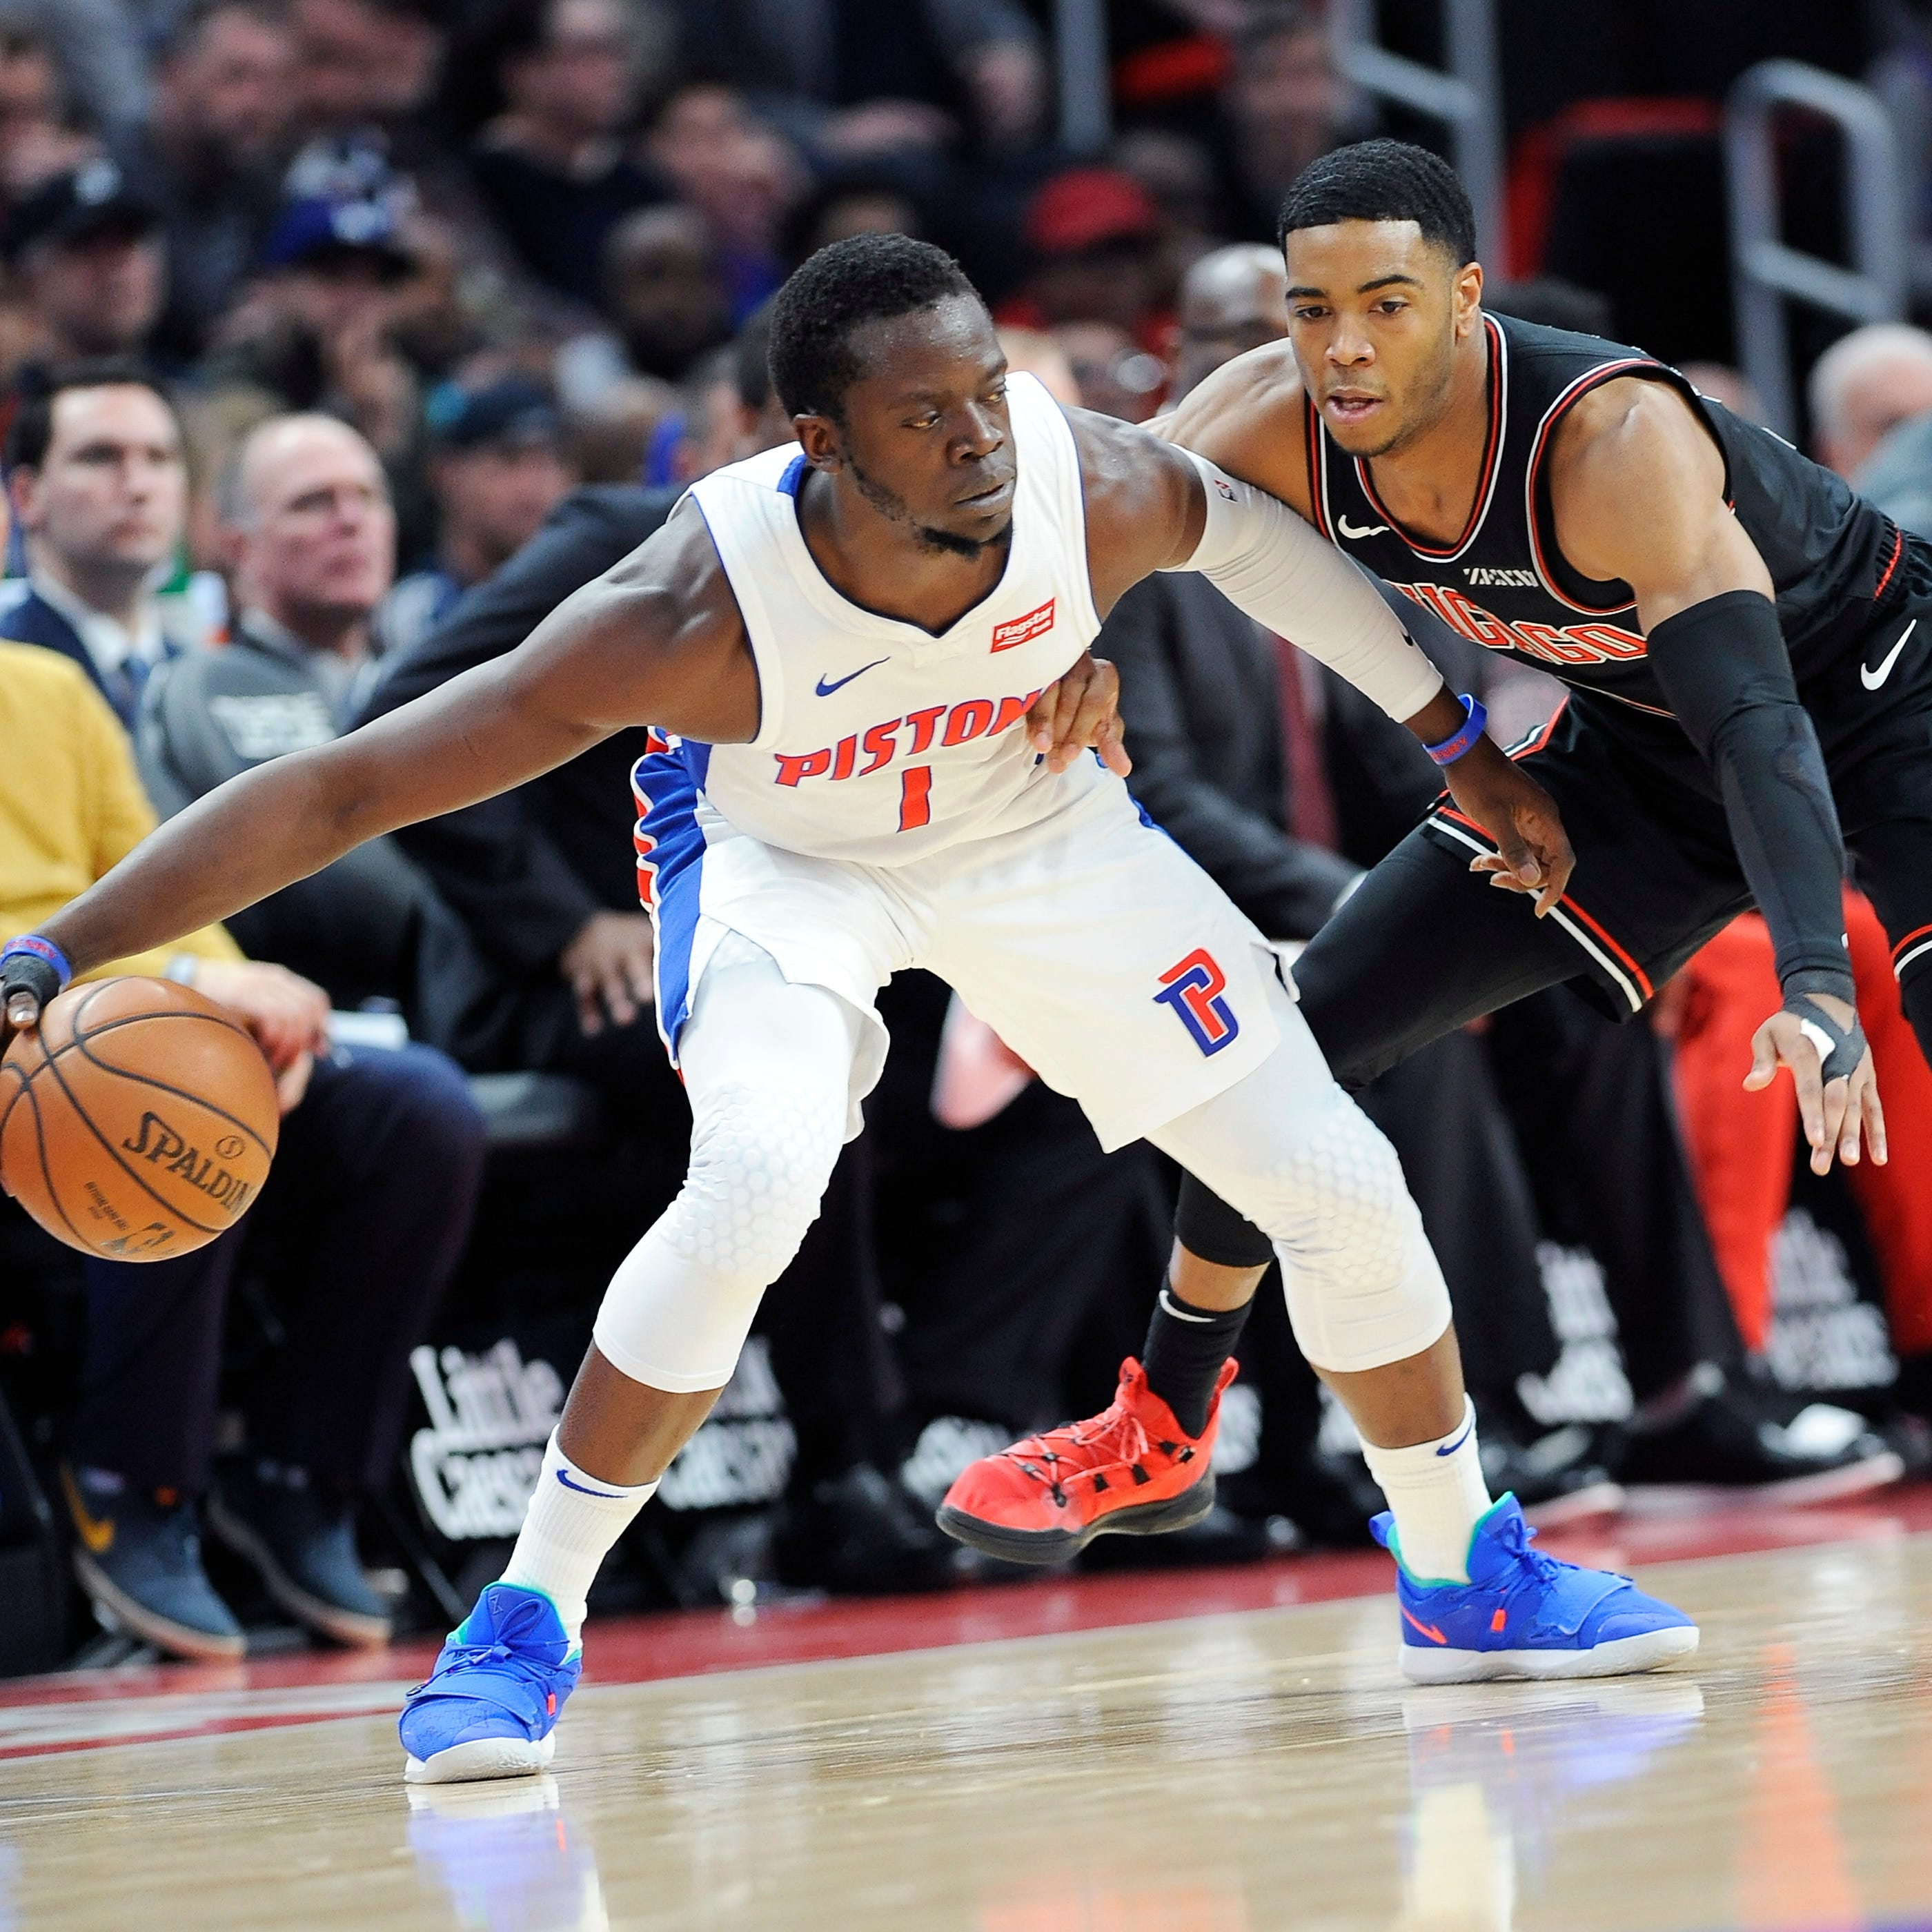 Three is magic number for Pistons to clinch playoff spot